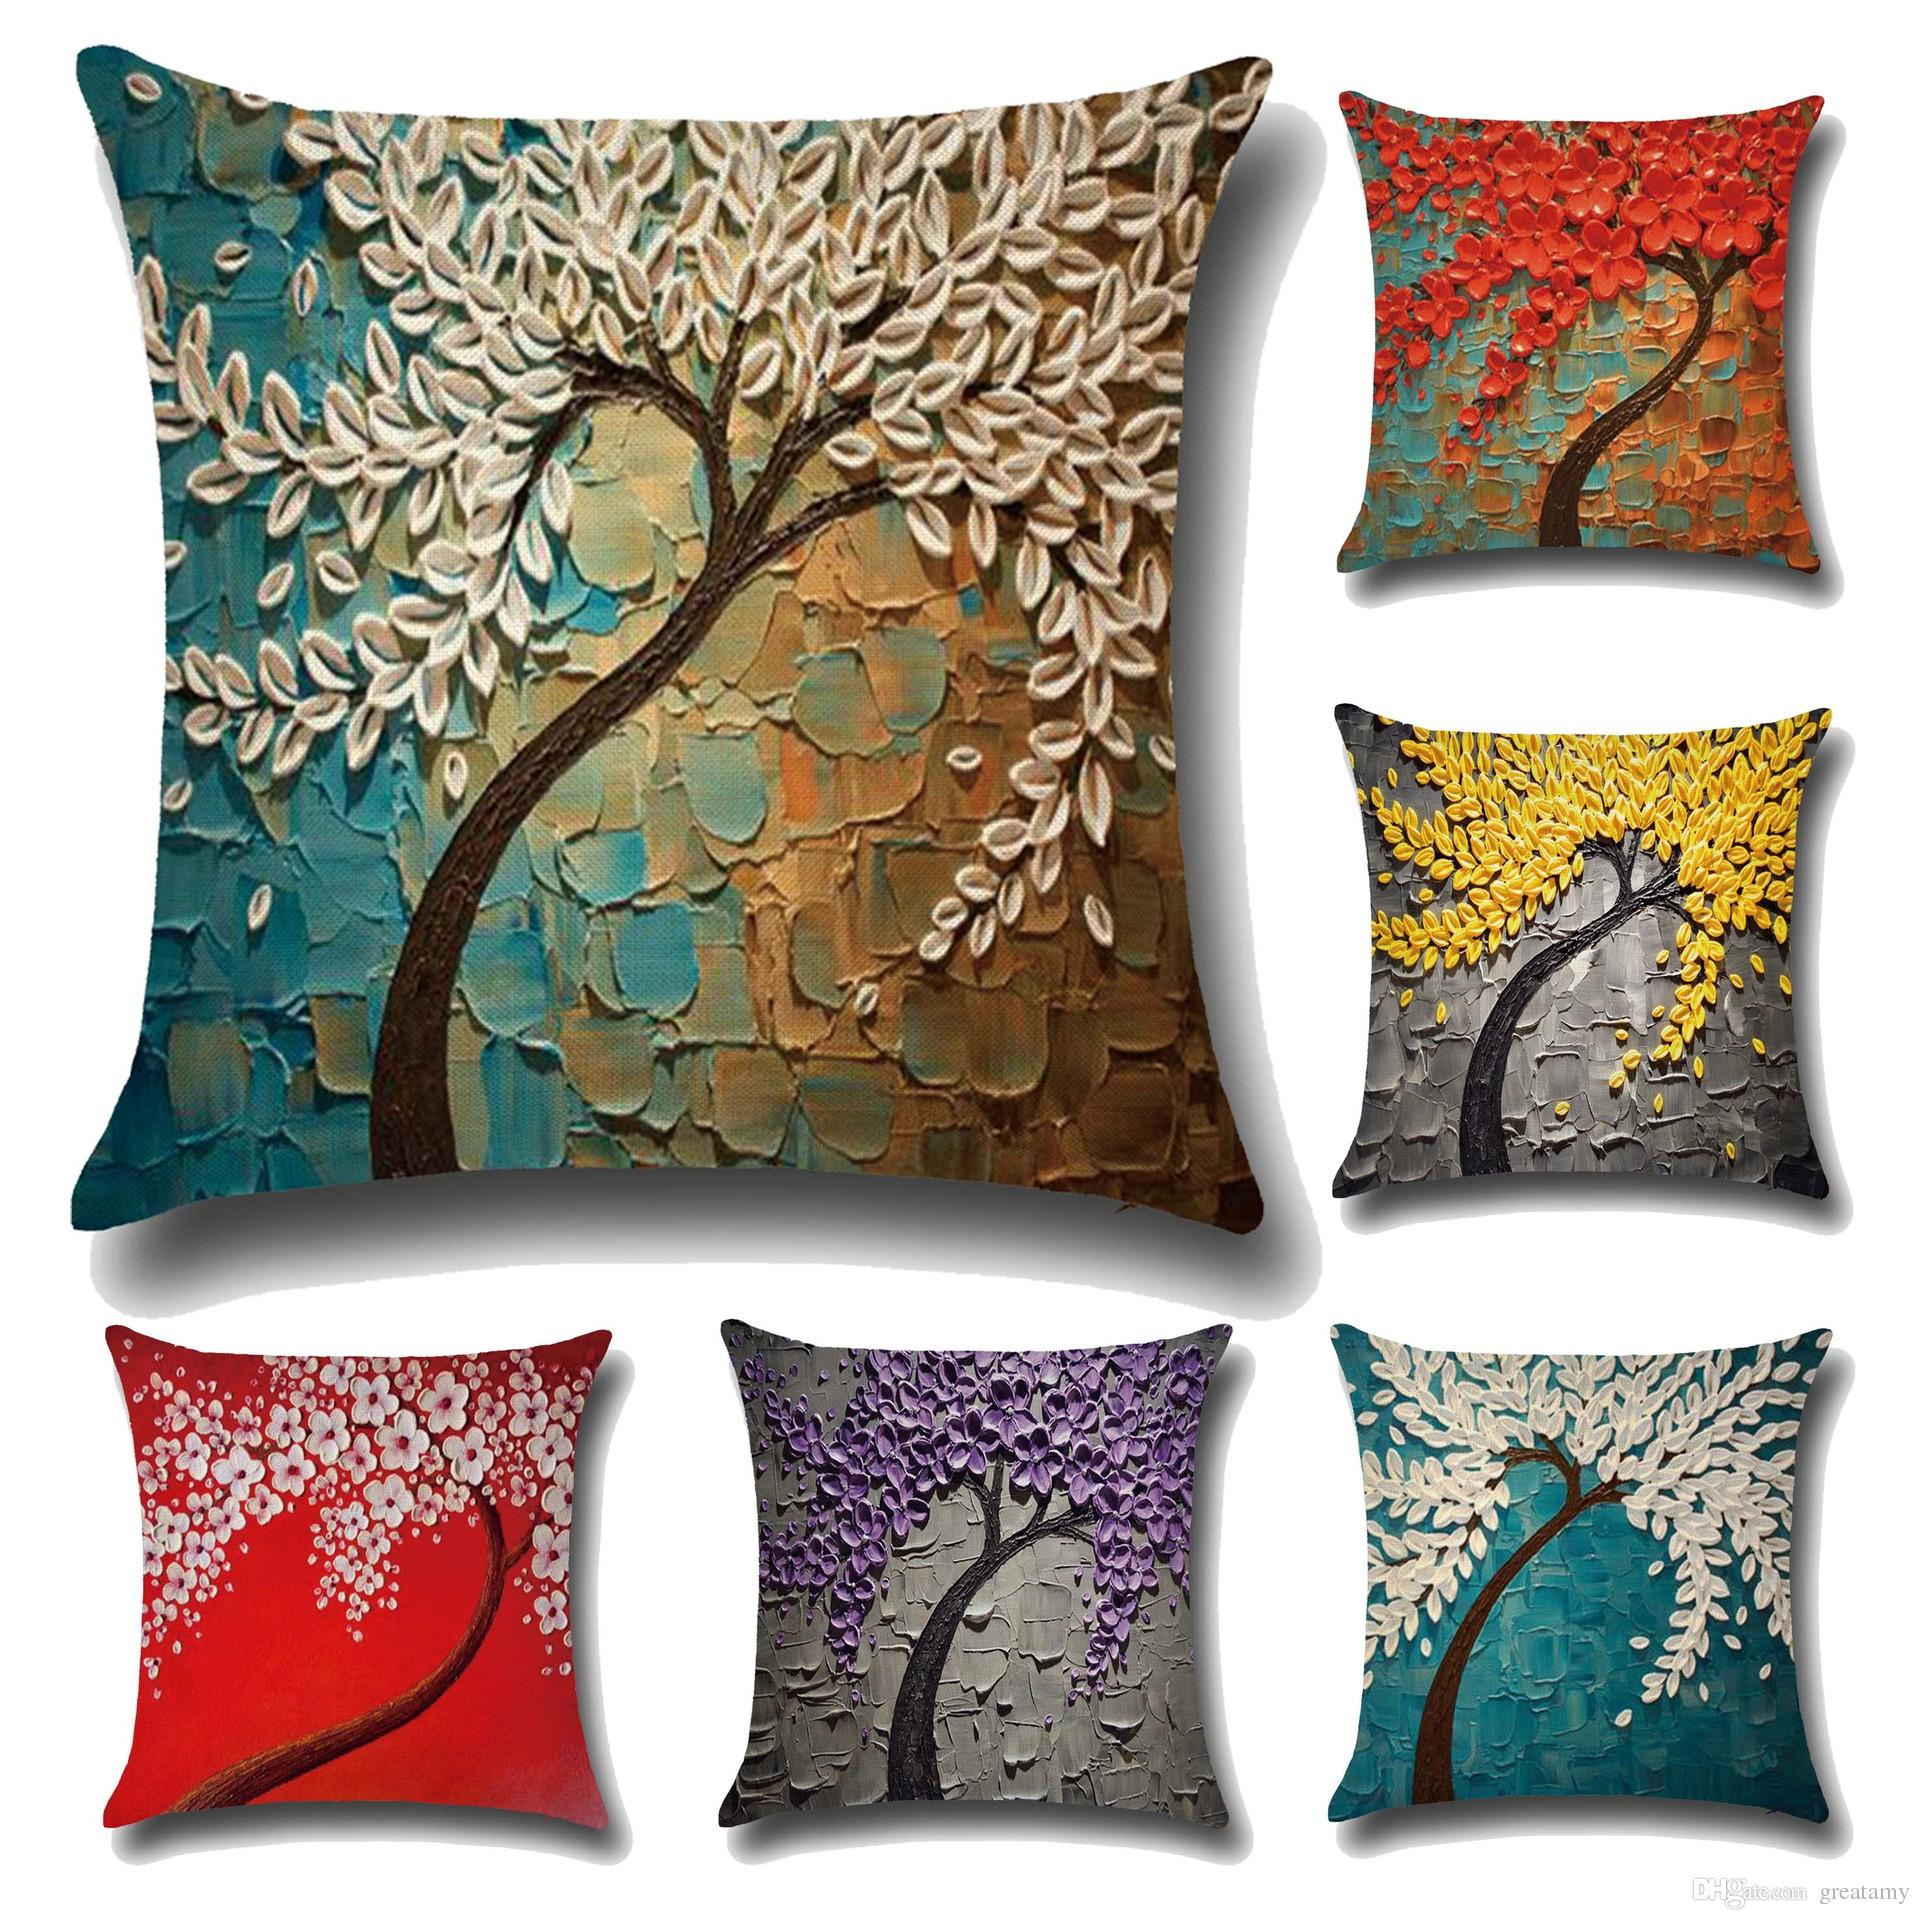 New Flower Printed Cushion Covers 3D Soft Linen Pillow Cases Creative Tree  Pattern Cover Decorative Pillows Patio Cushions On Sale Outdoor Chaise  Cushions